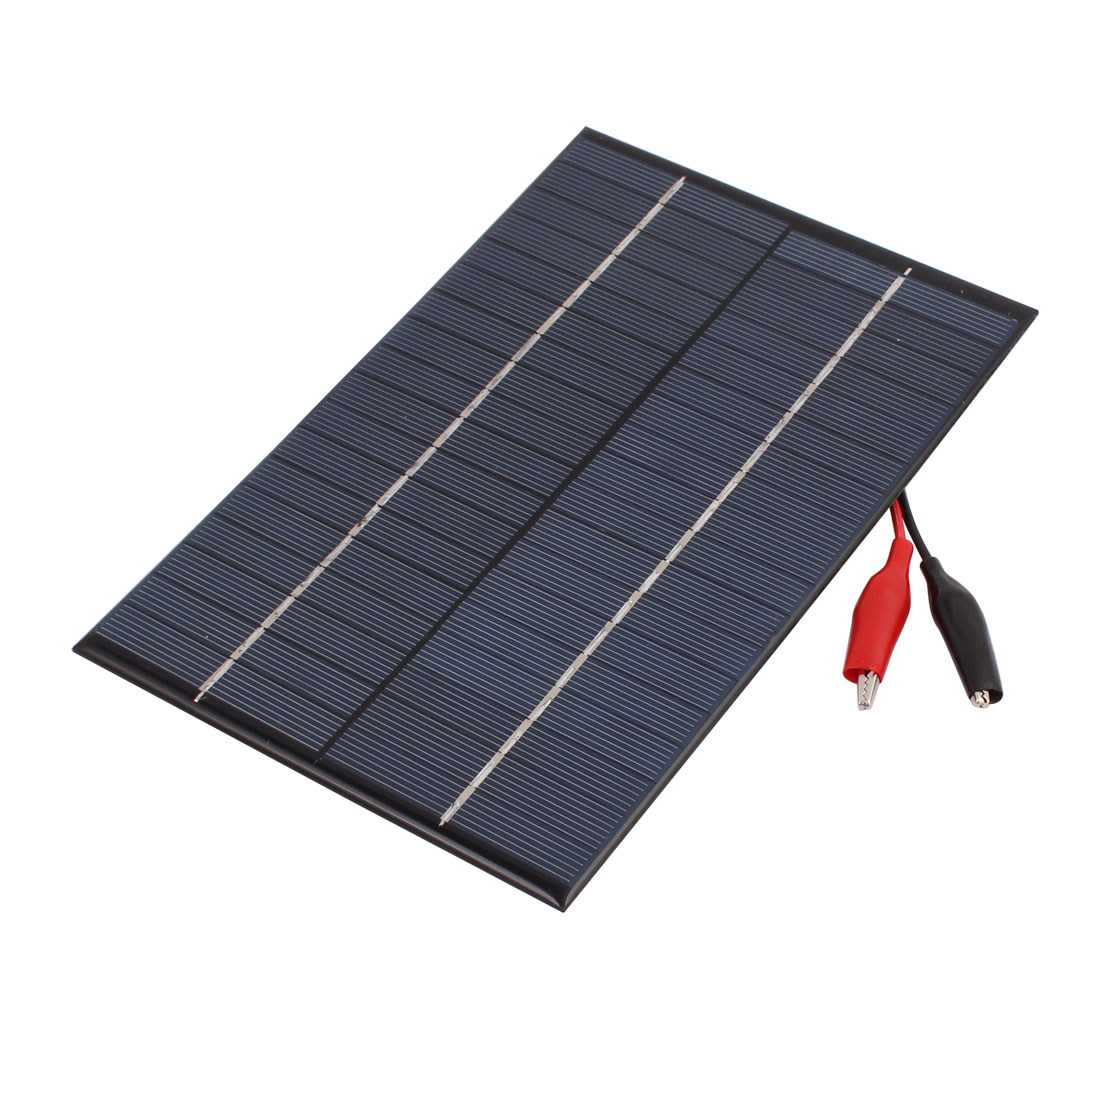 18V 4.2W Solar Panel Battery Charger w Alligator Clip Adapter Cable